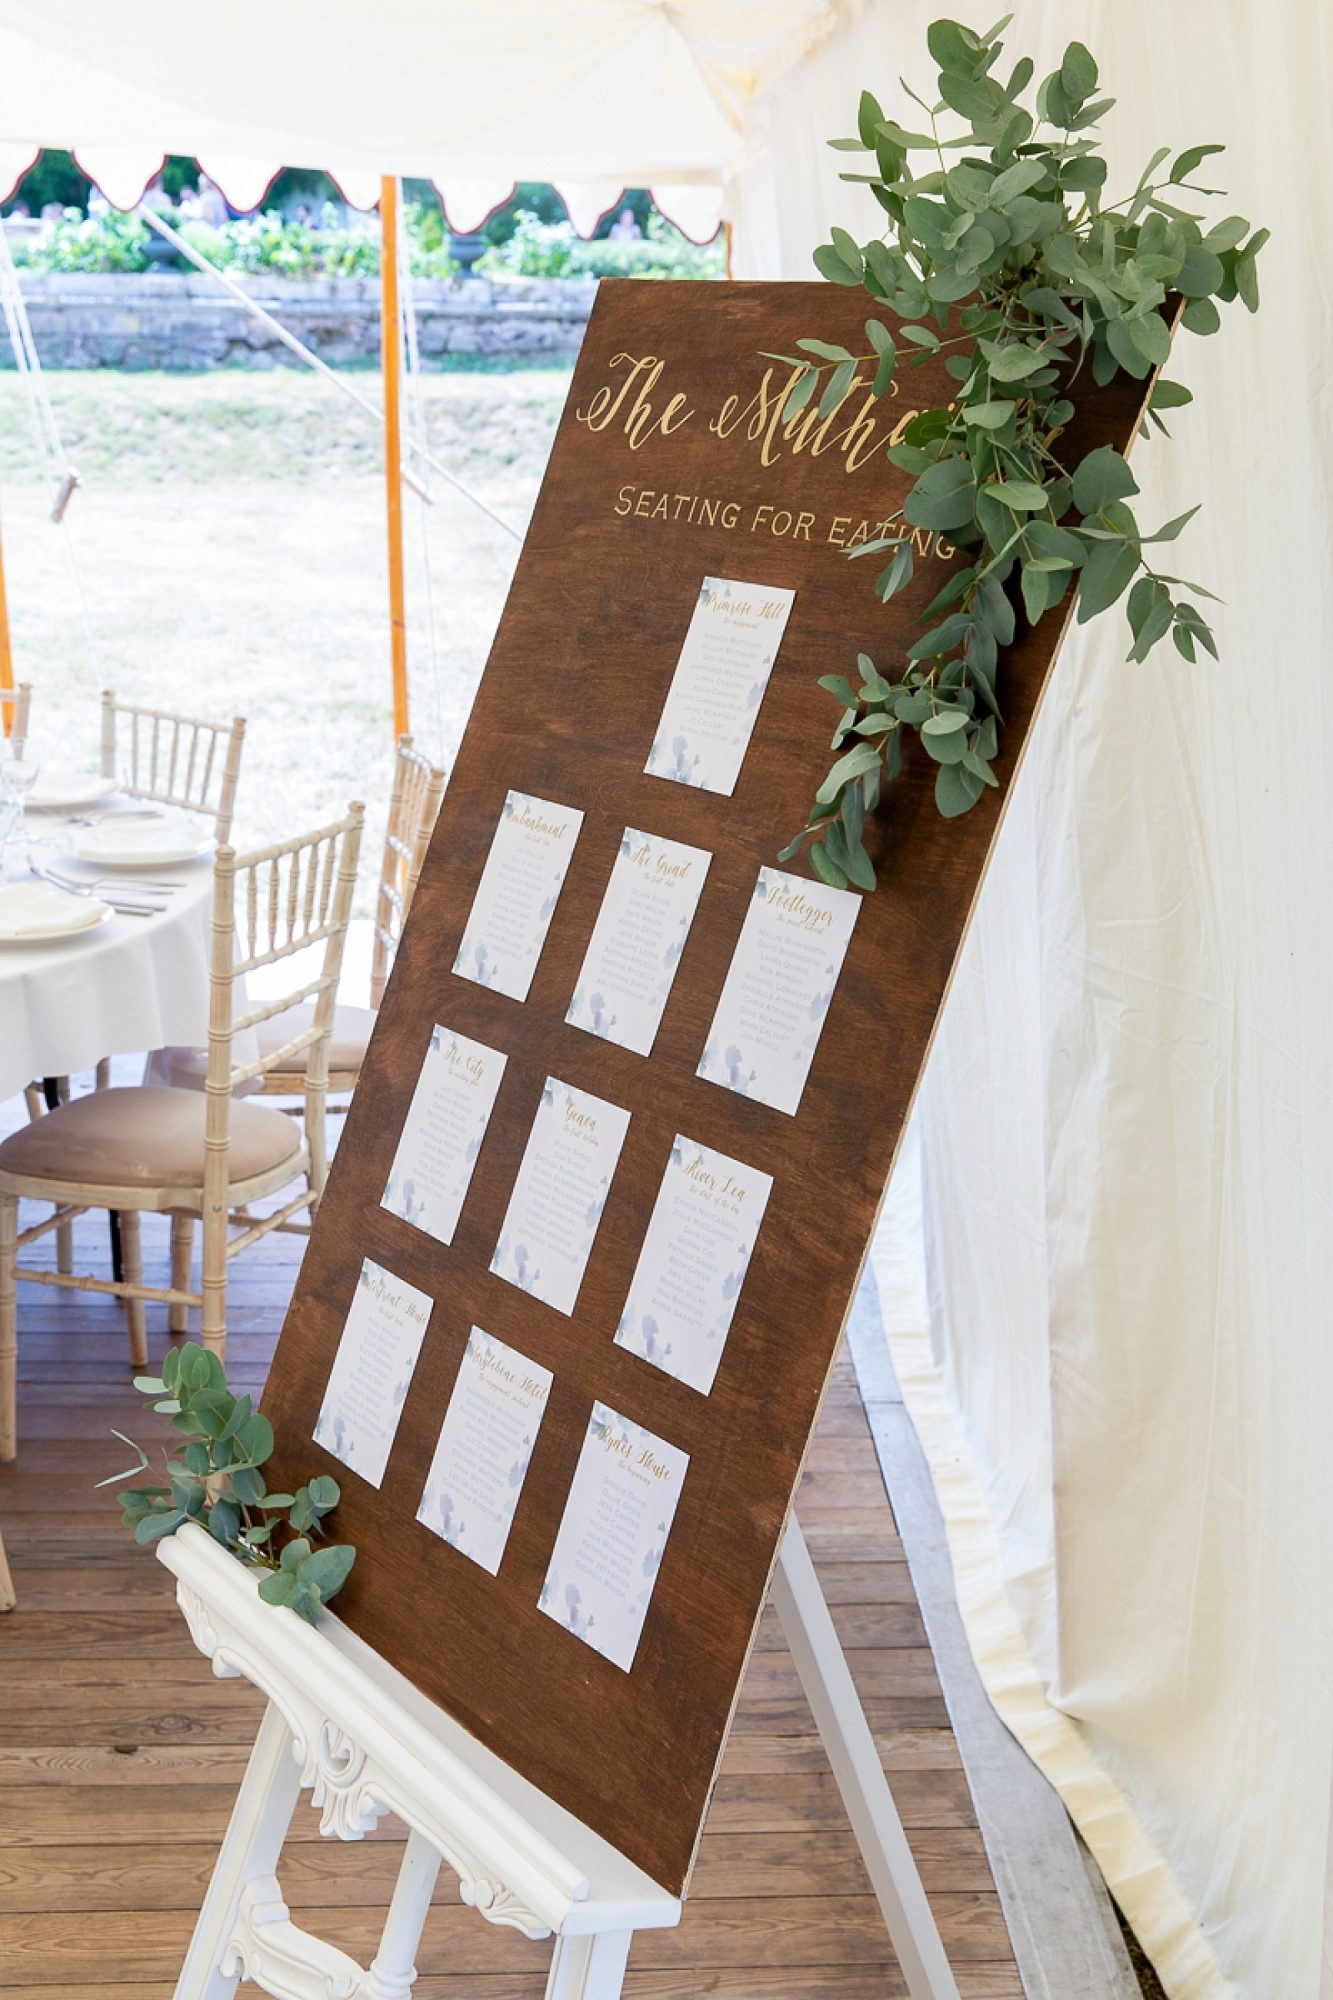 Table plan with eucalyptus leaf hanging down on the right side